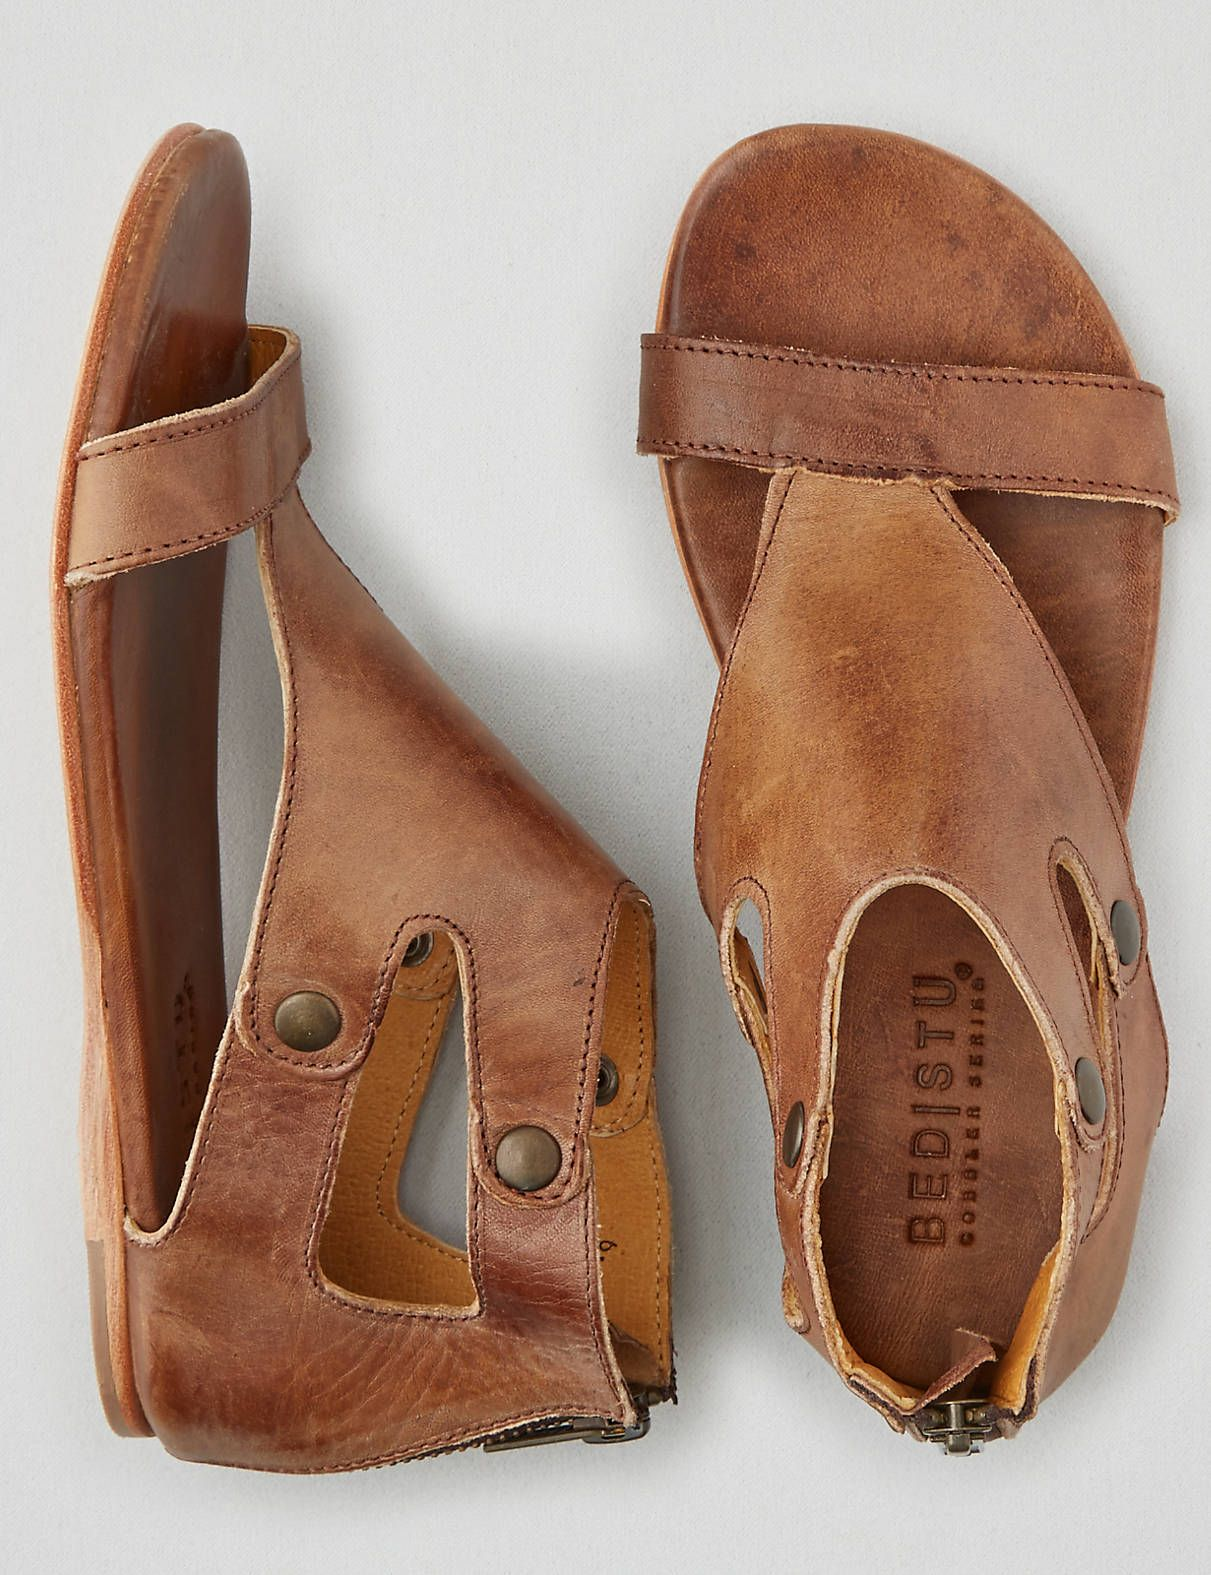 American Eagle Outfitters Men's & Women's Clothing, Shoes ...